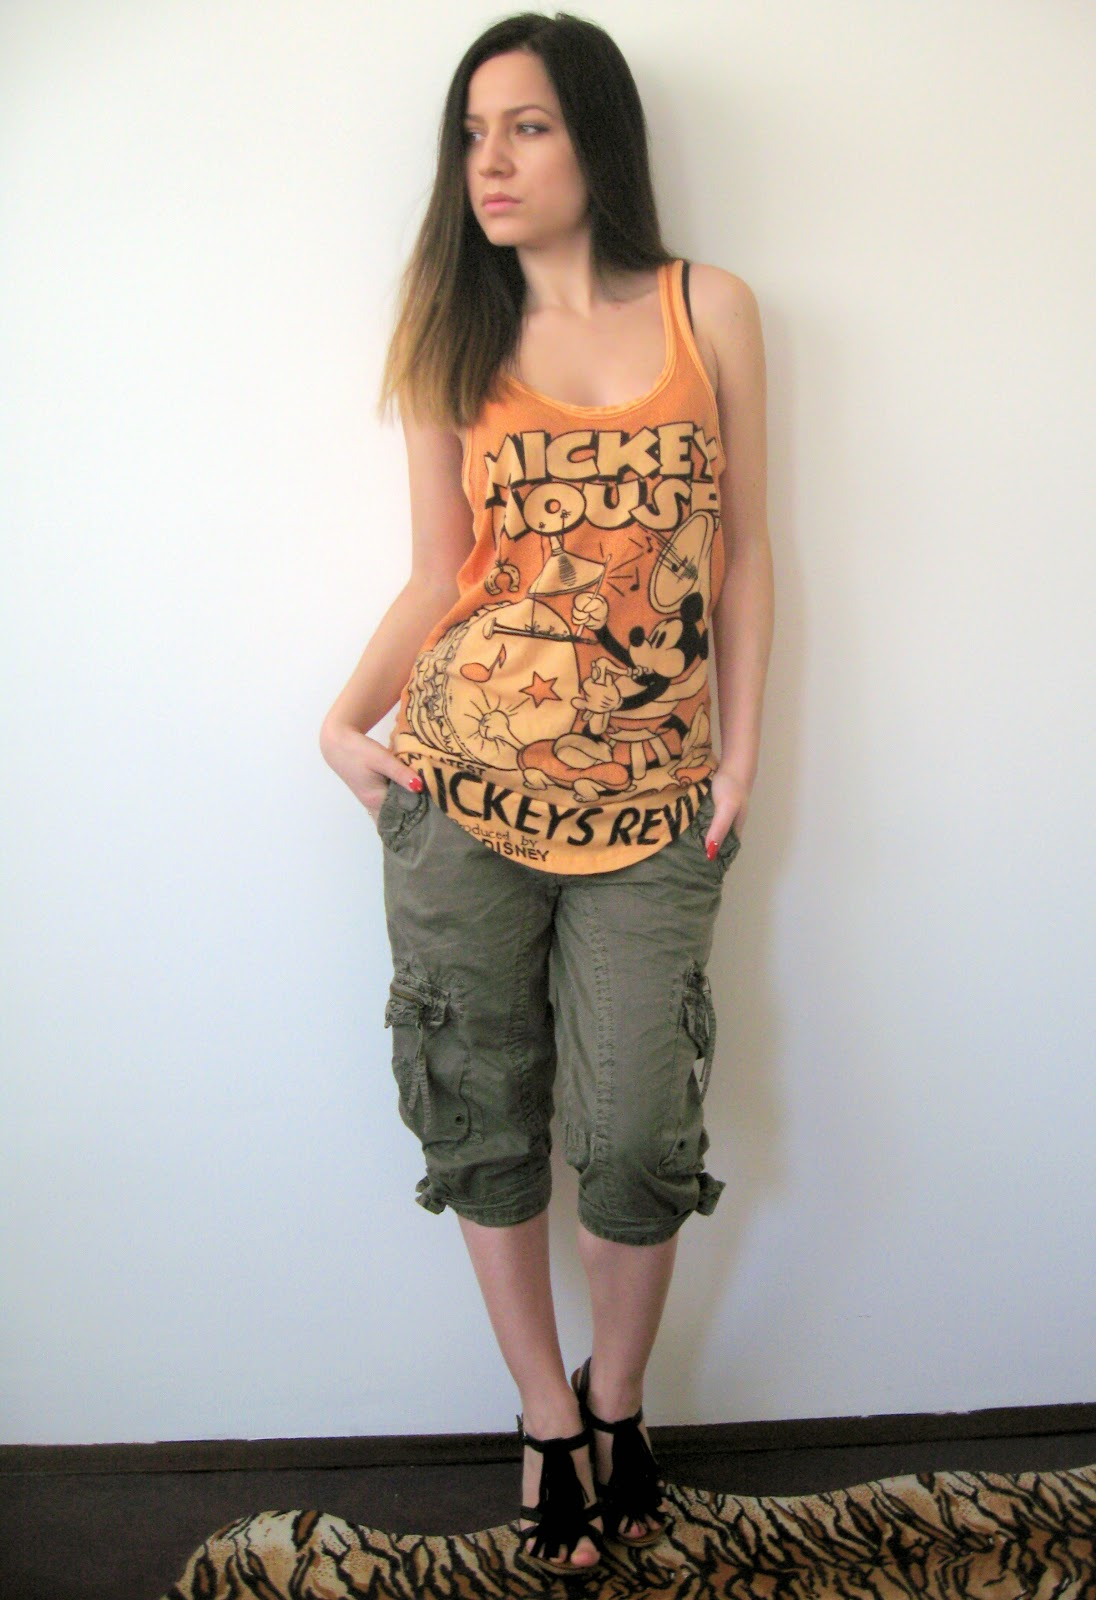 olive green cargo pants, orange tank top with mickey mouse print, black fringe sandals, black blazer, ombre hair